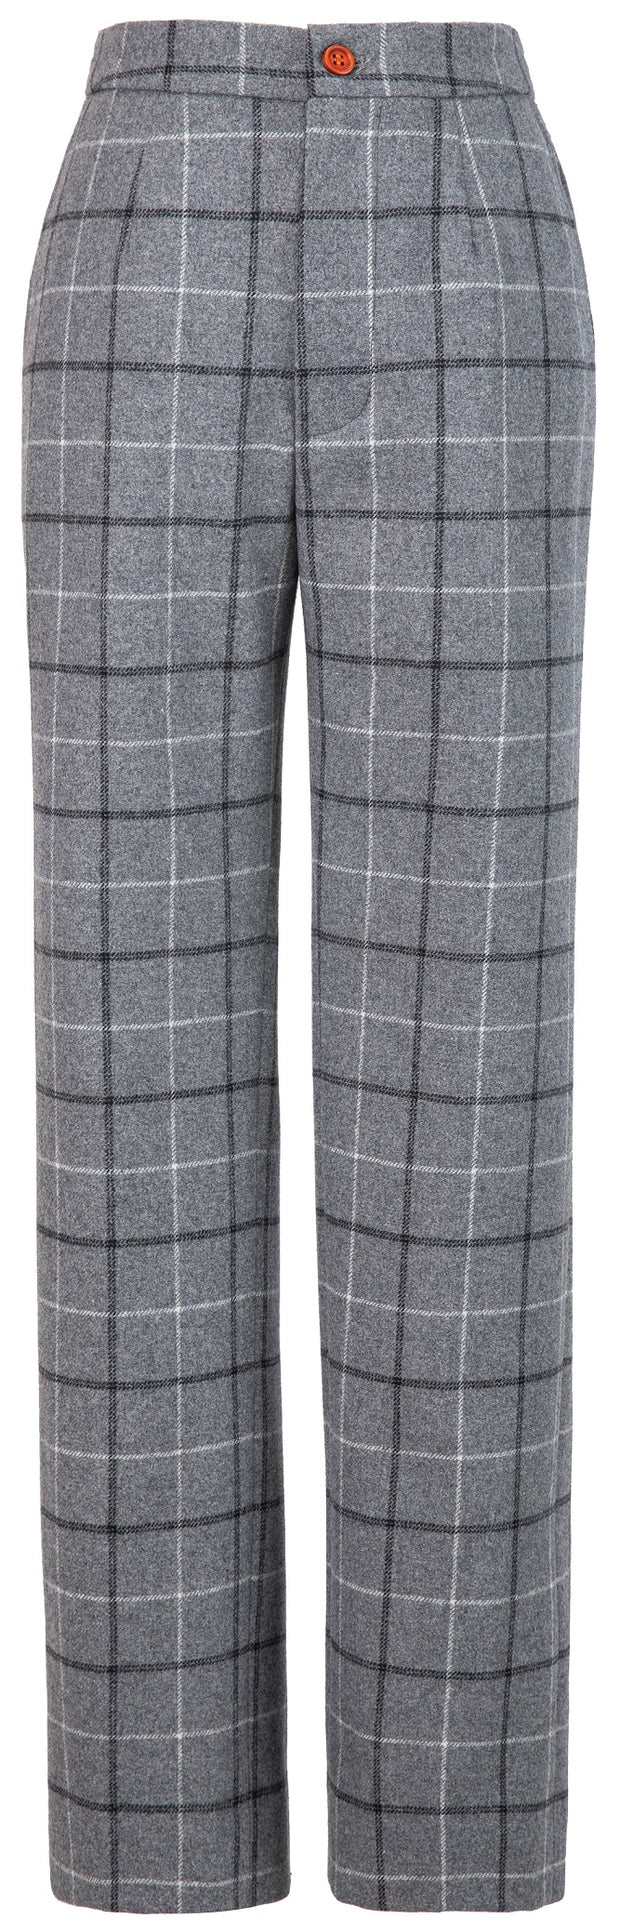 Light Grey Tattersall Tweed Trousers Womens